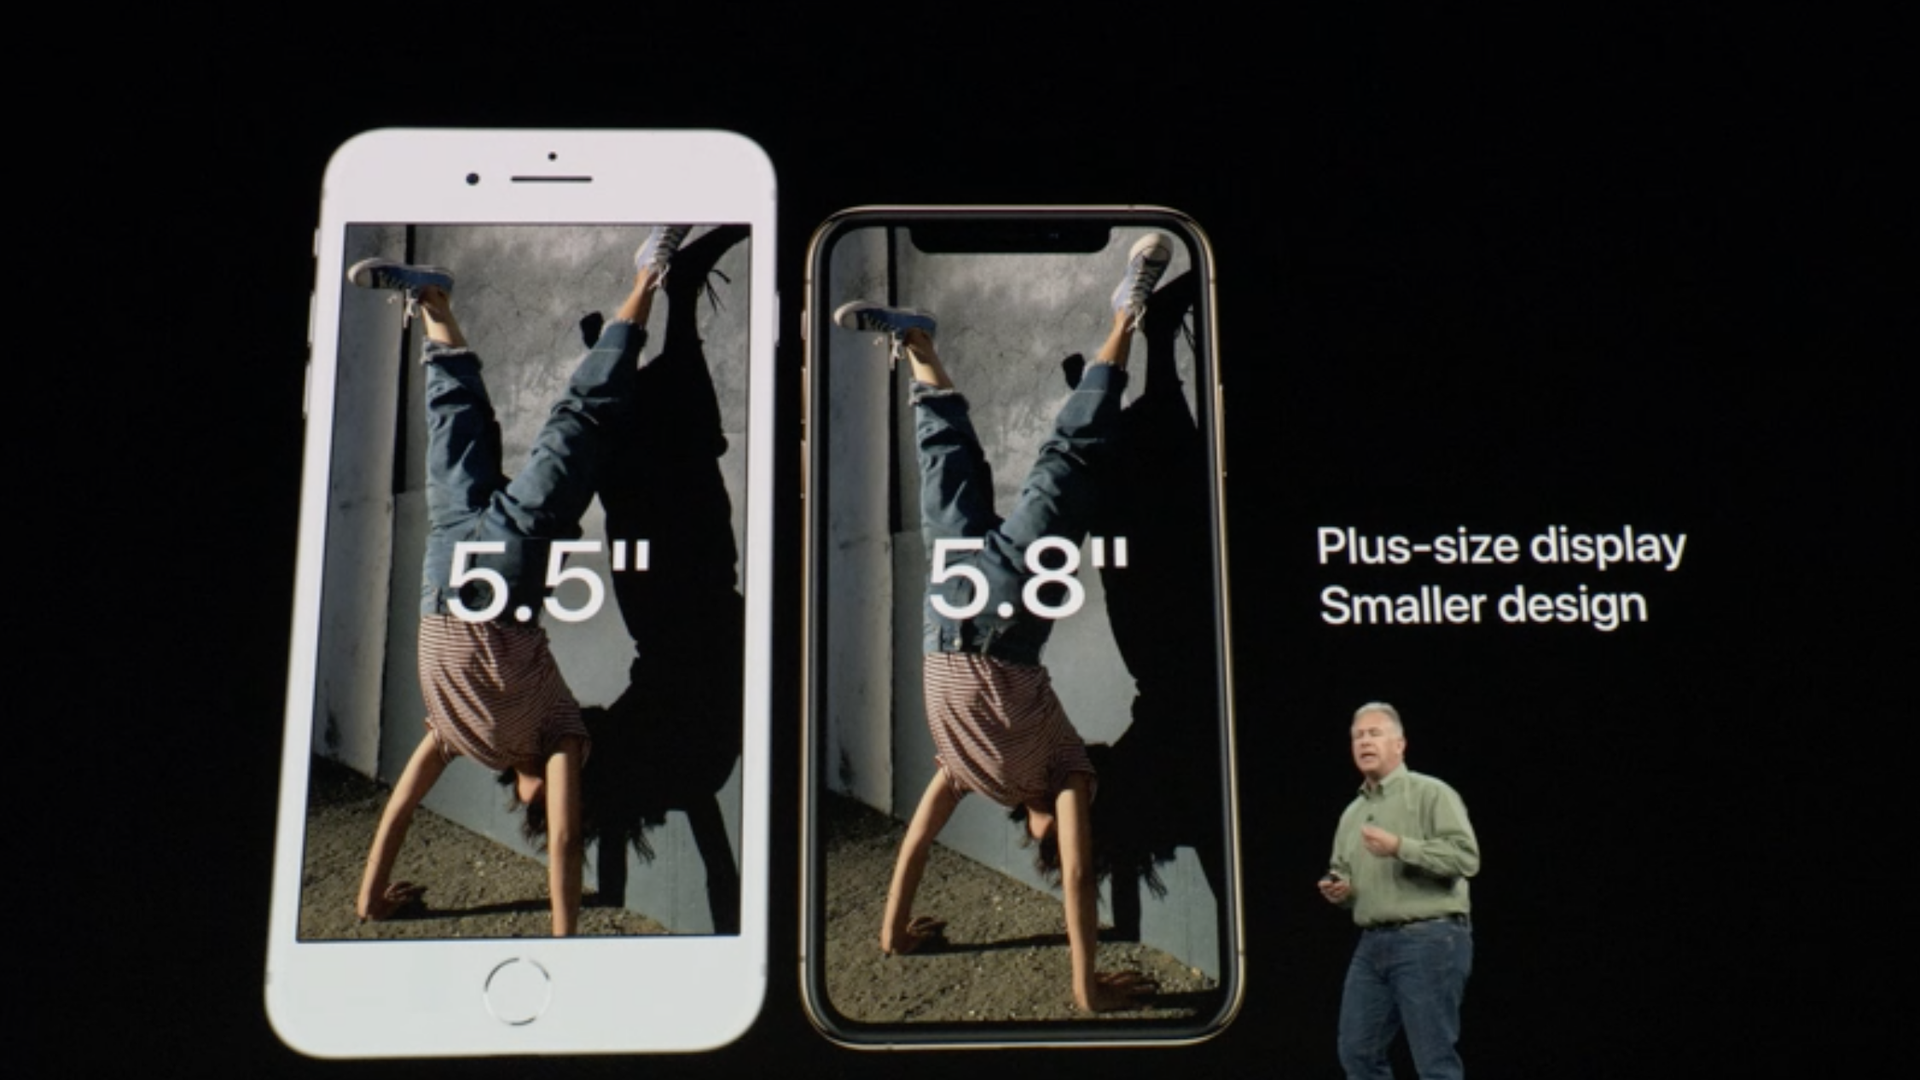 Apple presentation image of new iPhones